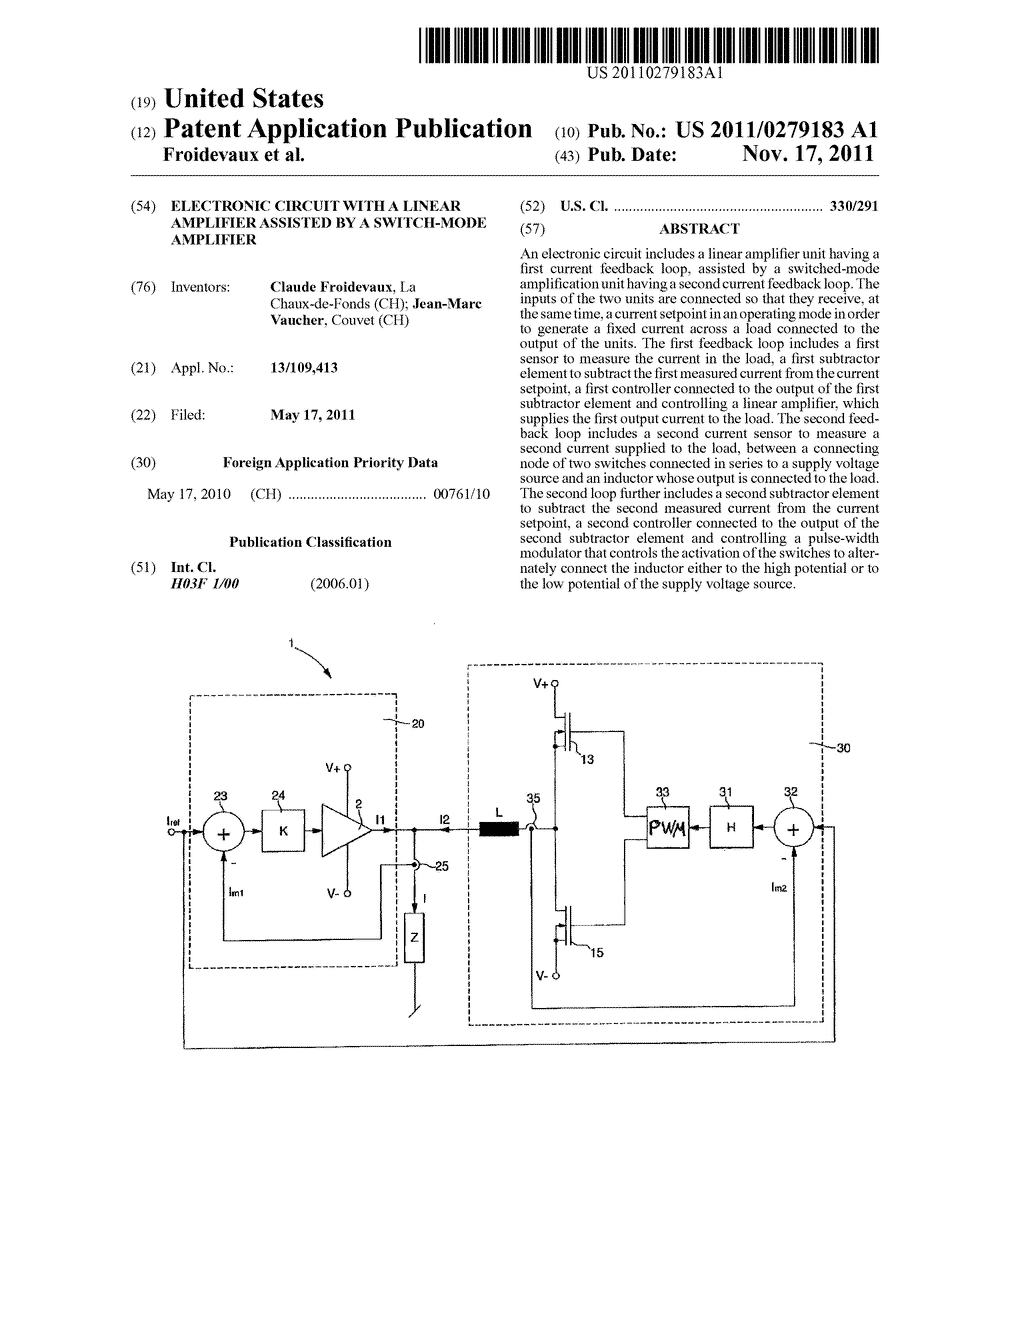 Linear Amplifier Circuit Gaincontrolled Diagram Tradeoficcom Electronic With A Assisted Switch Mode Schematic And Image